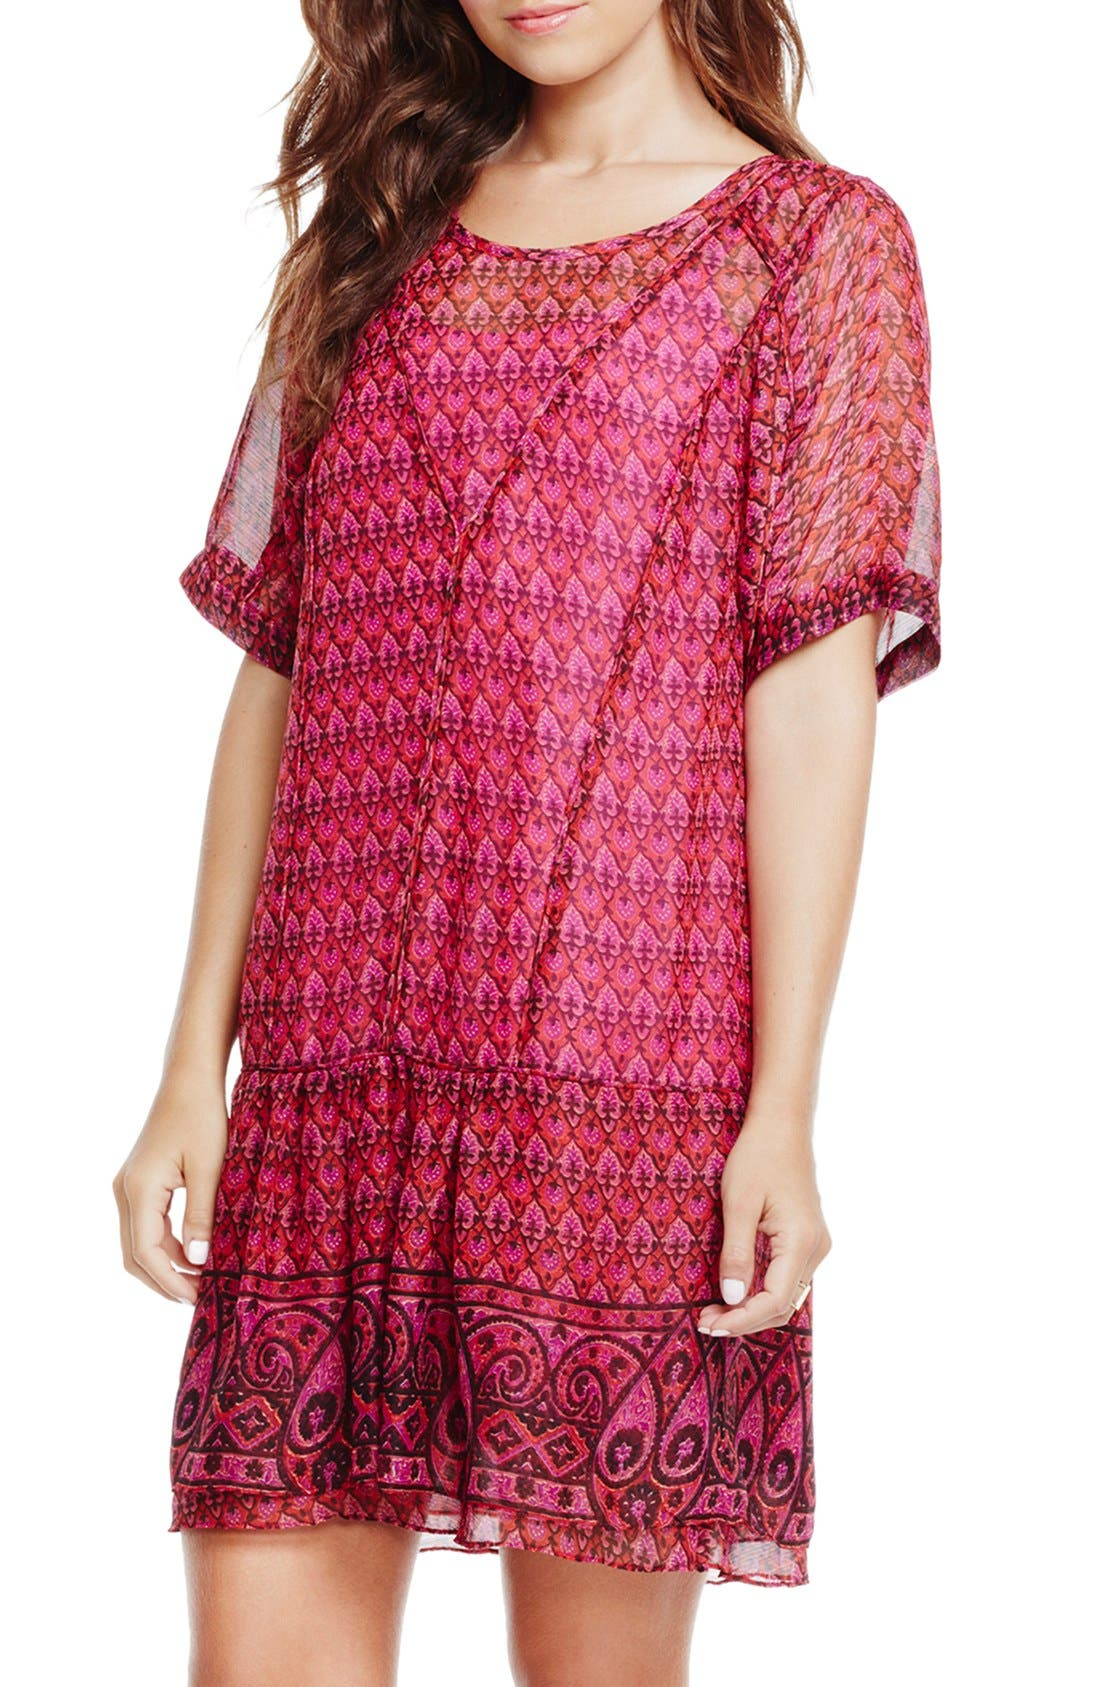 Alternate Image 1 Selected - Two by Vince Camuto Print Drop Waist Dress